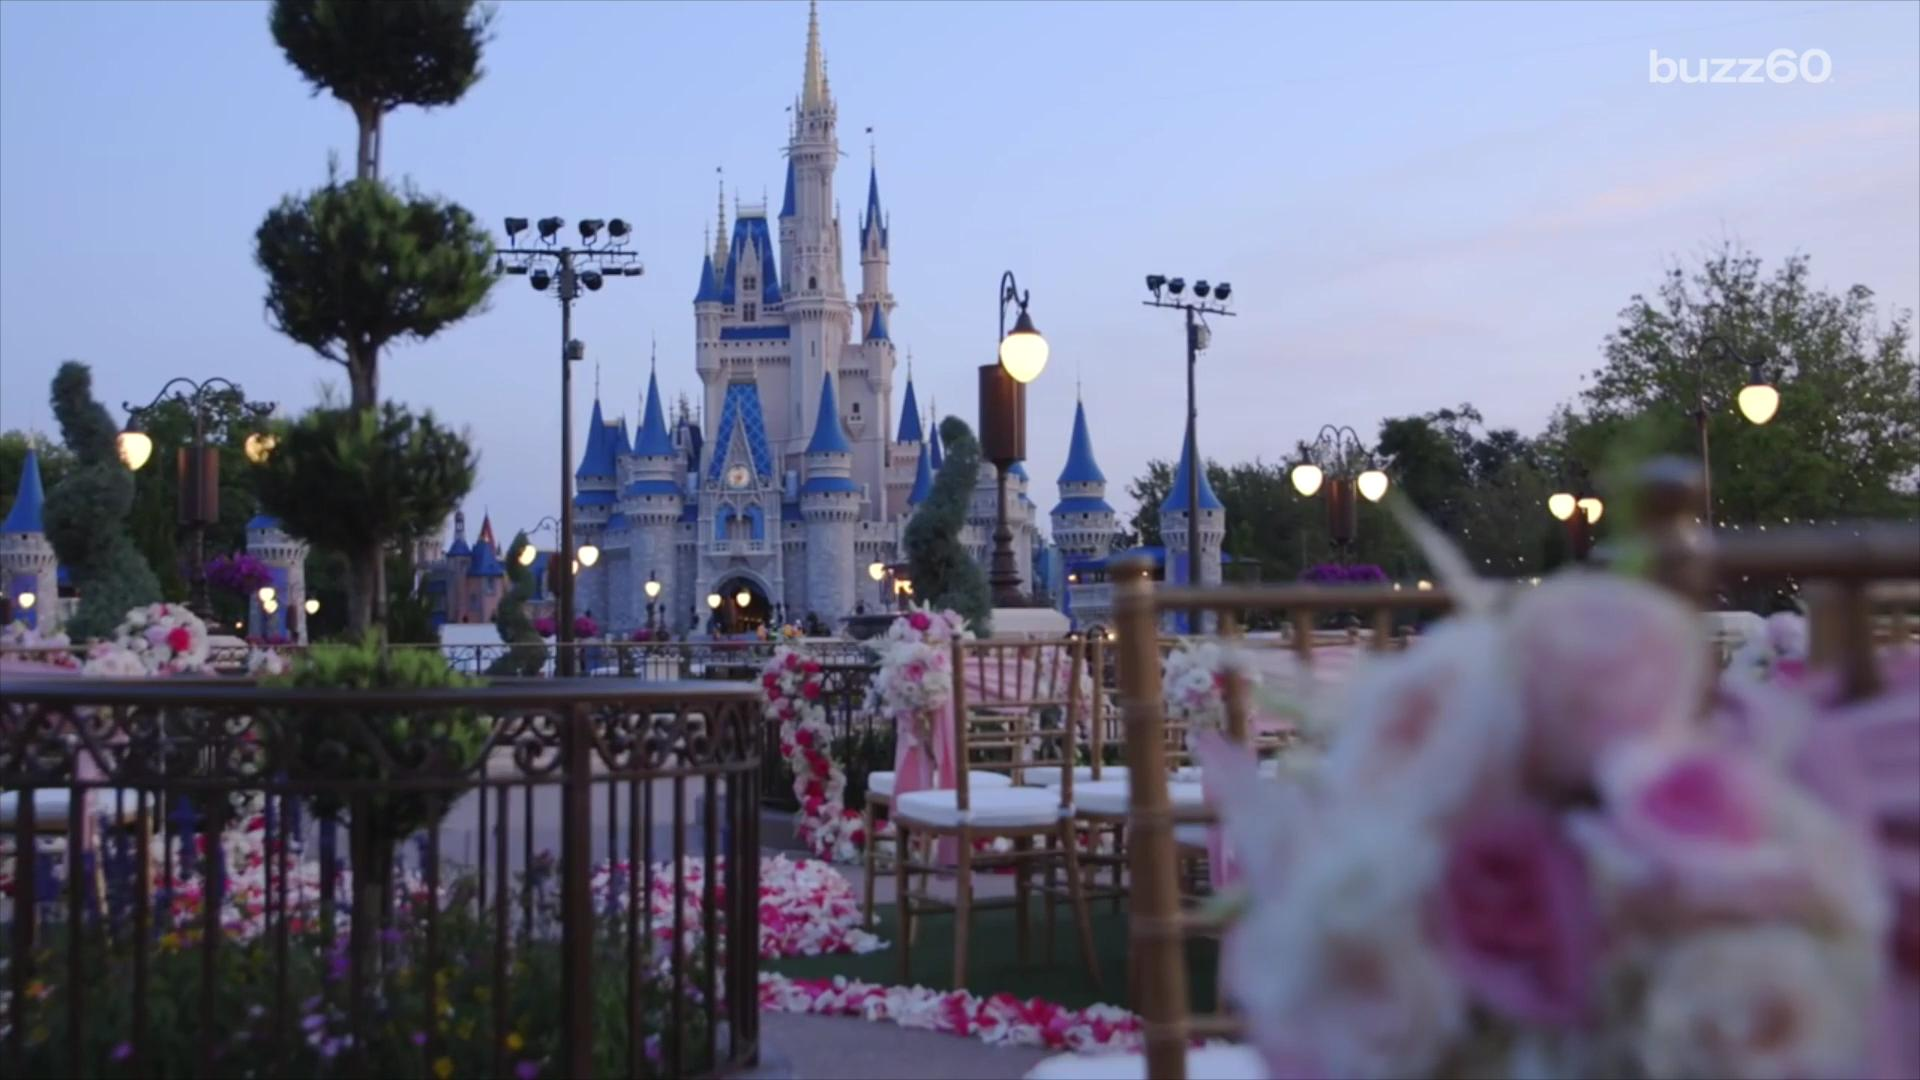 You can get married at Cinderella's castle but it will cost you!